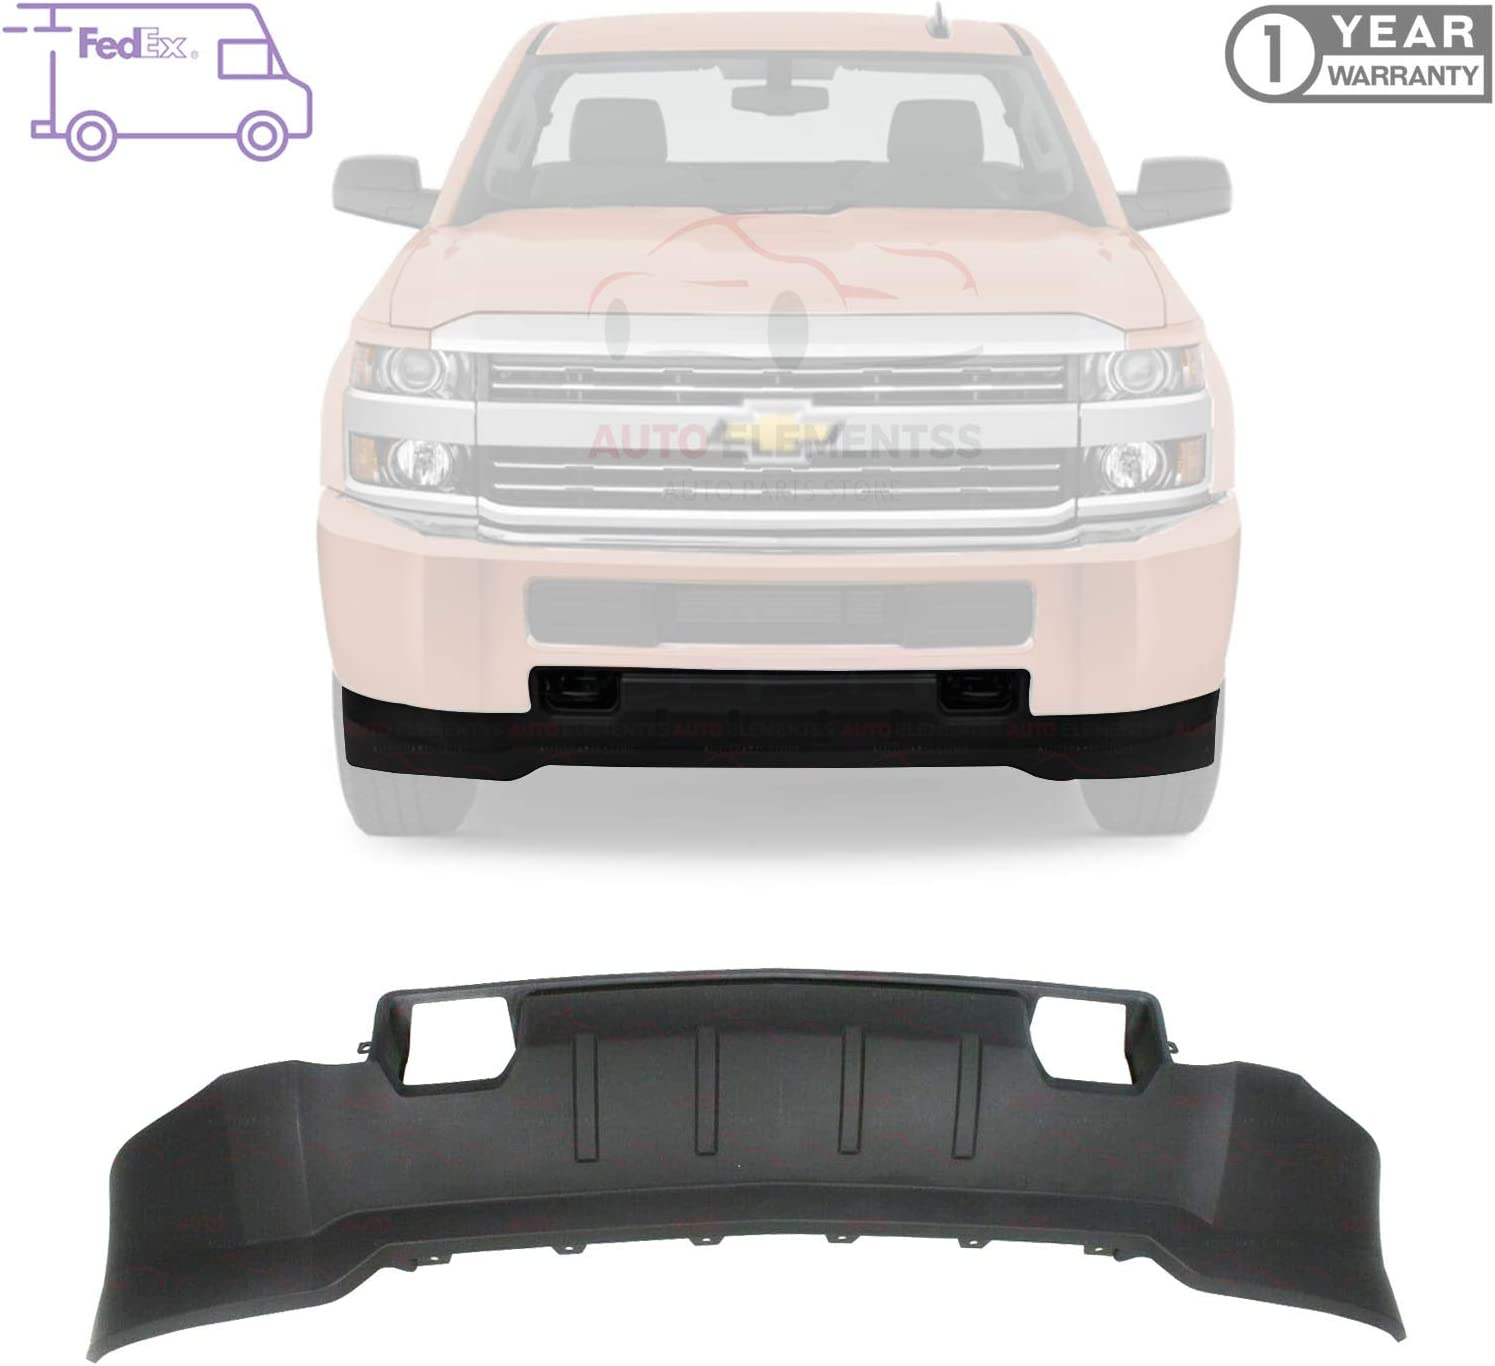 Amazon Com Front Lower Valance Air Deflector Textured Plastic For 2015 2019 Chevrolet Silverado 2500hd 3500hd Direct Replacement 22978557 Automotive